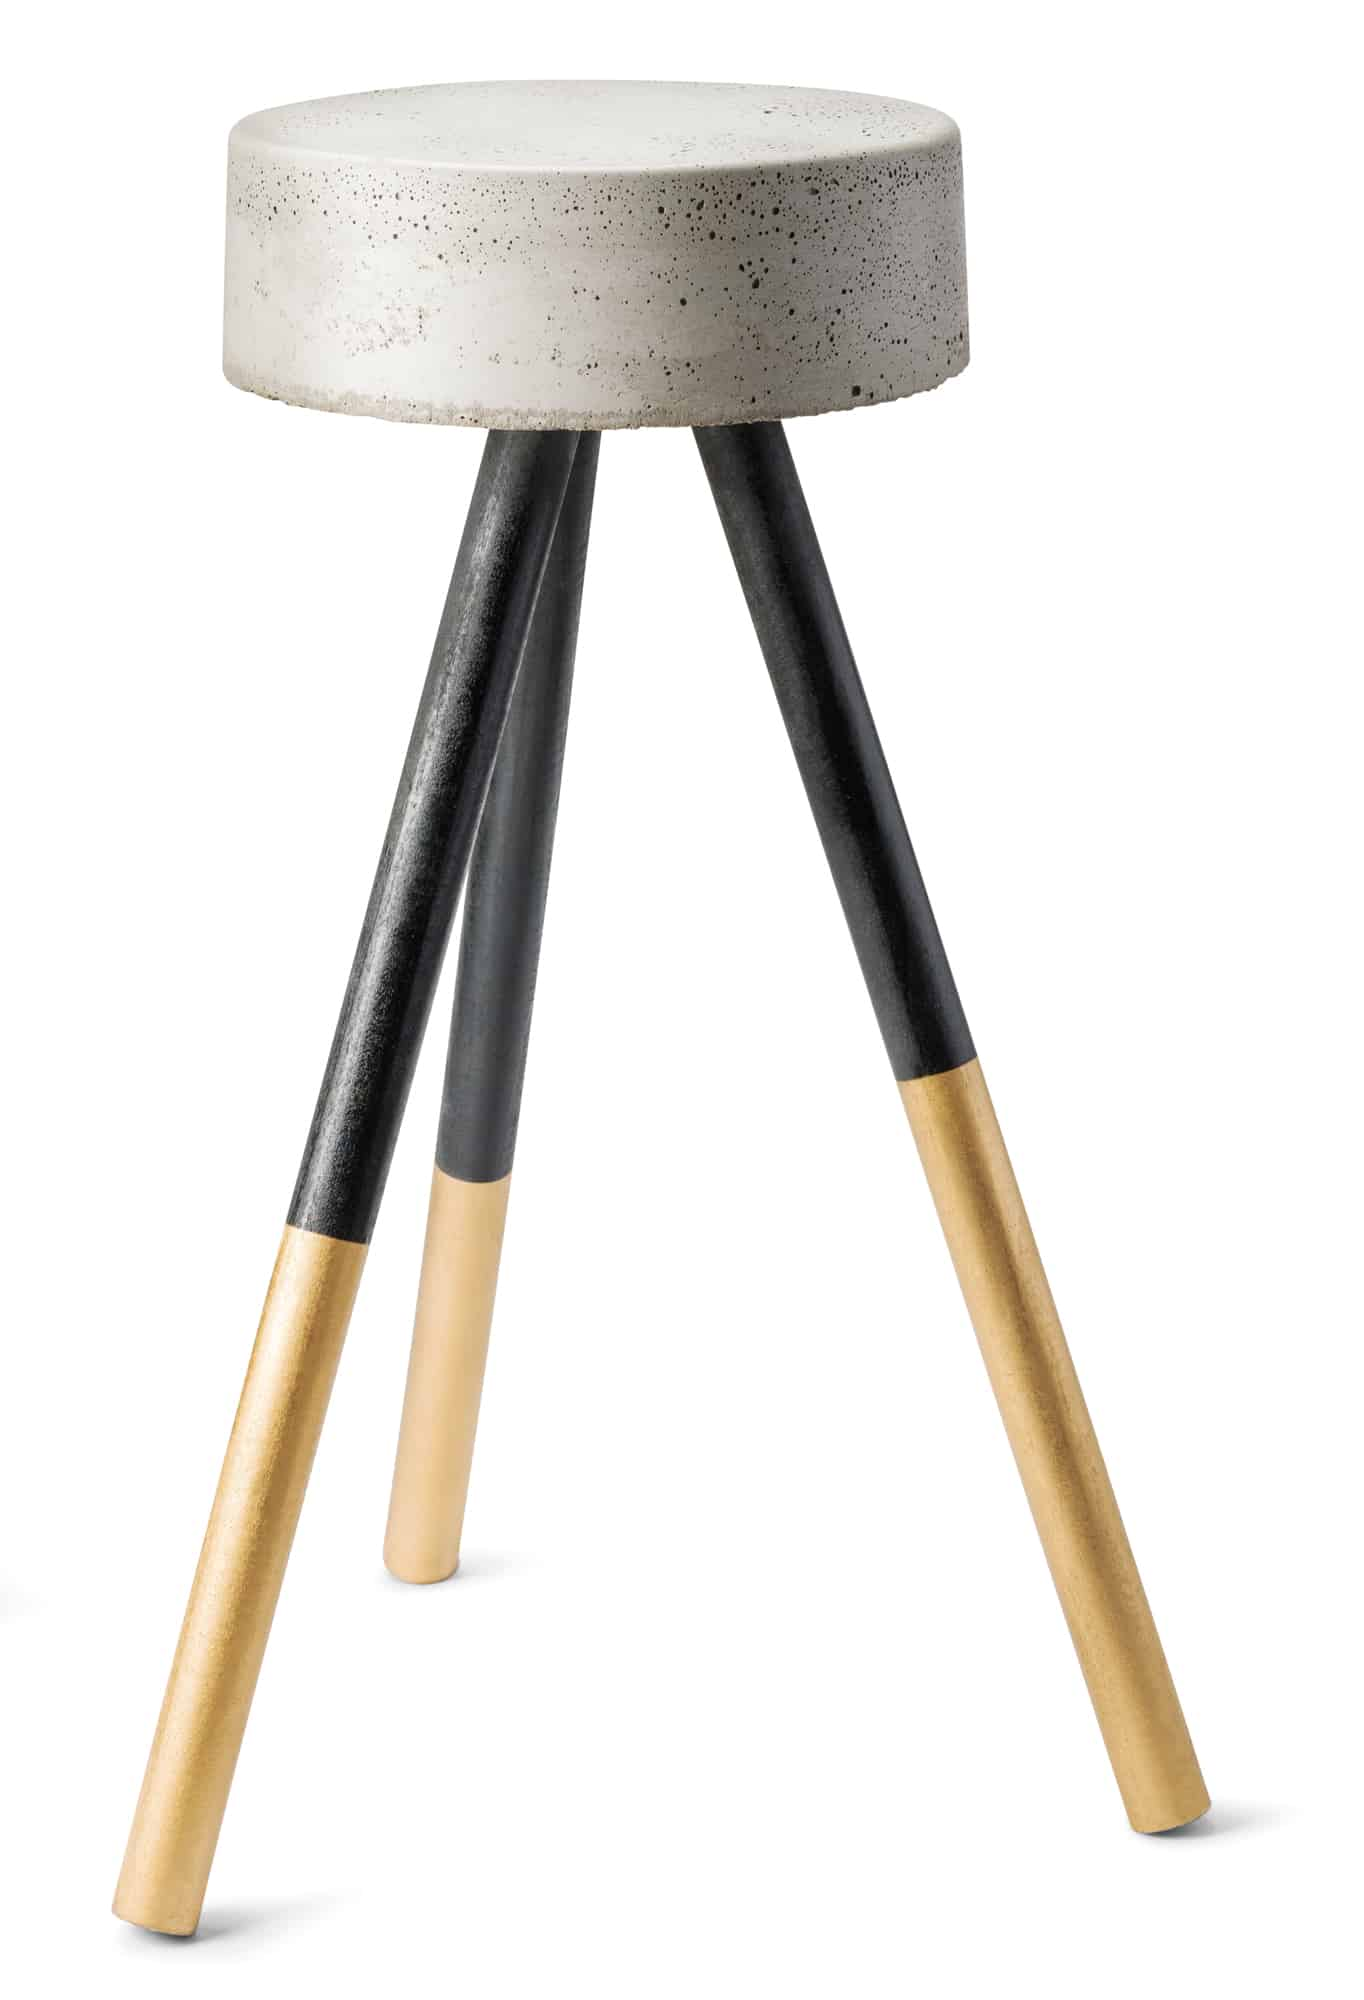 Concrete stool $75 by Allie Croza